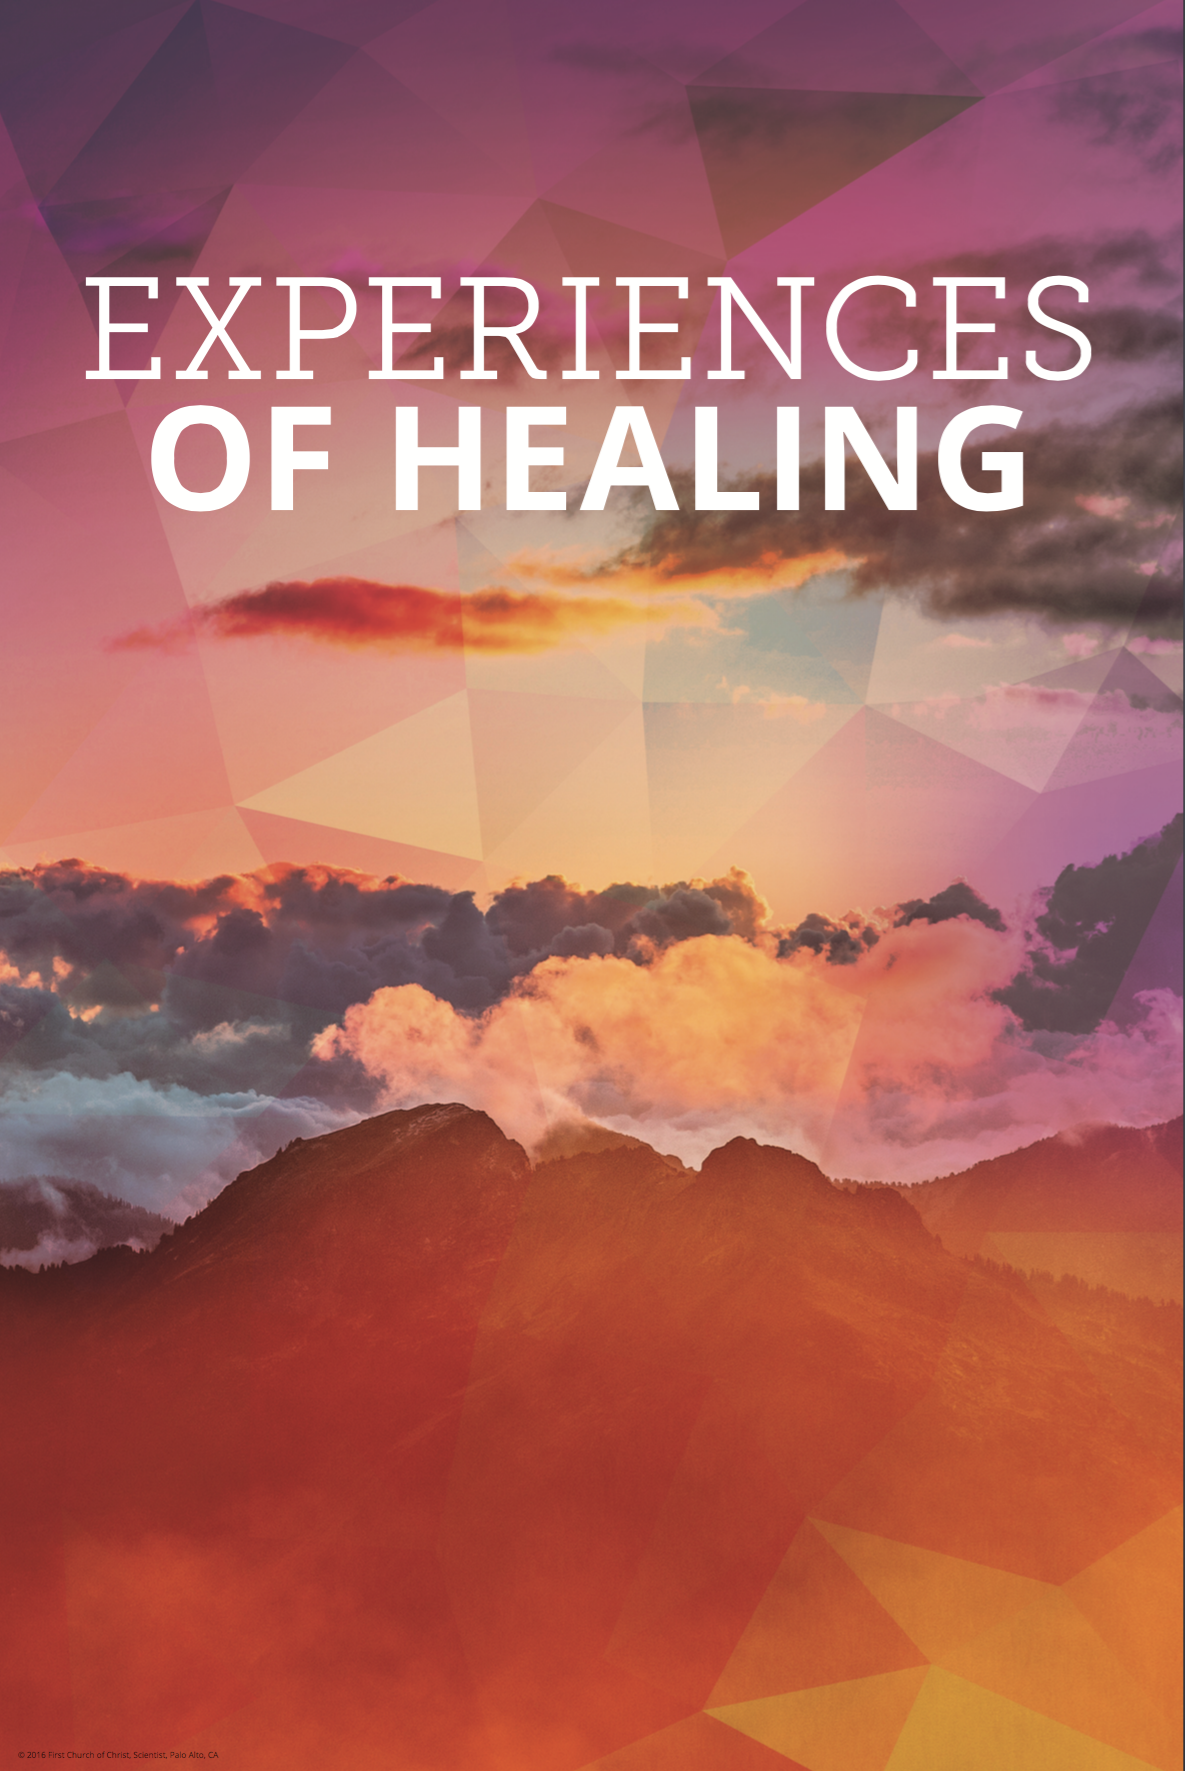 poster-exp-of-healing